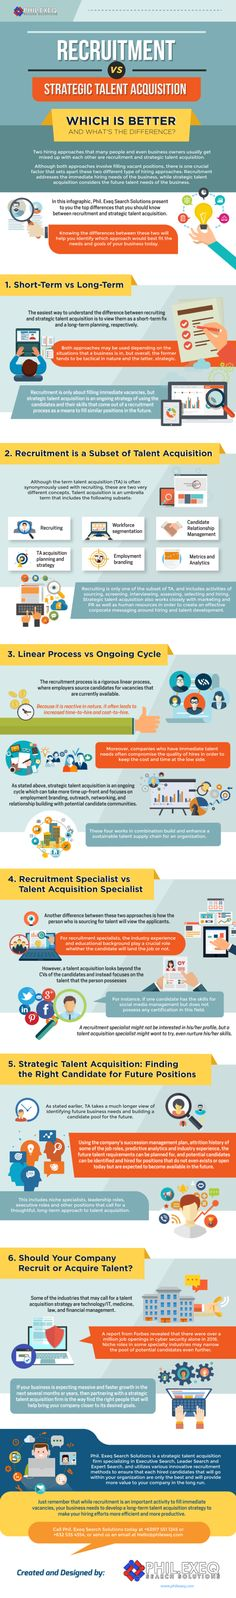 Recruitment vs. Strategic Talent Acquisition – Which is Better? (Infographic)